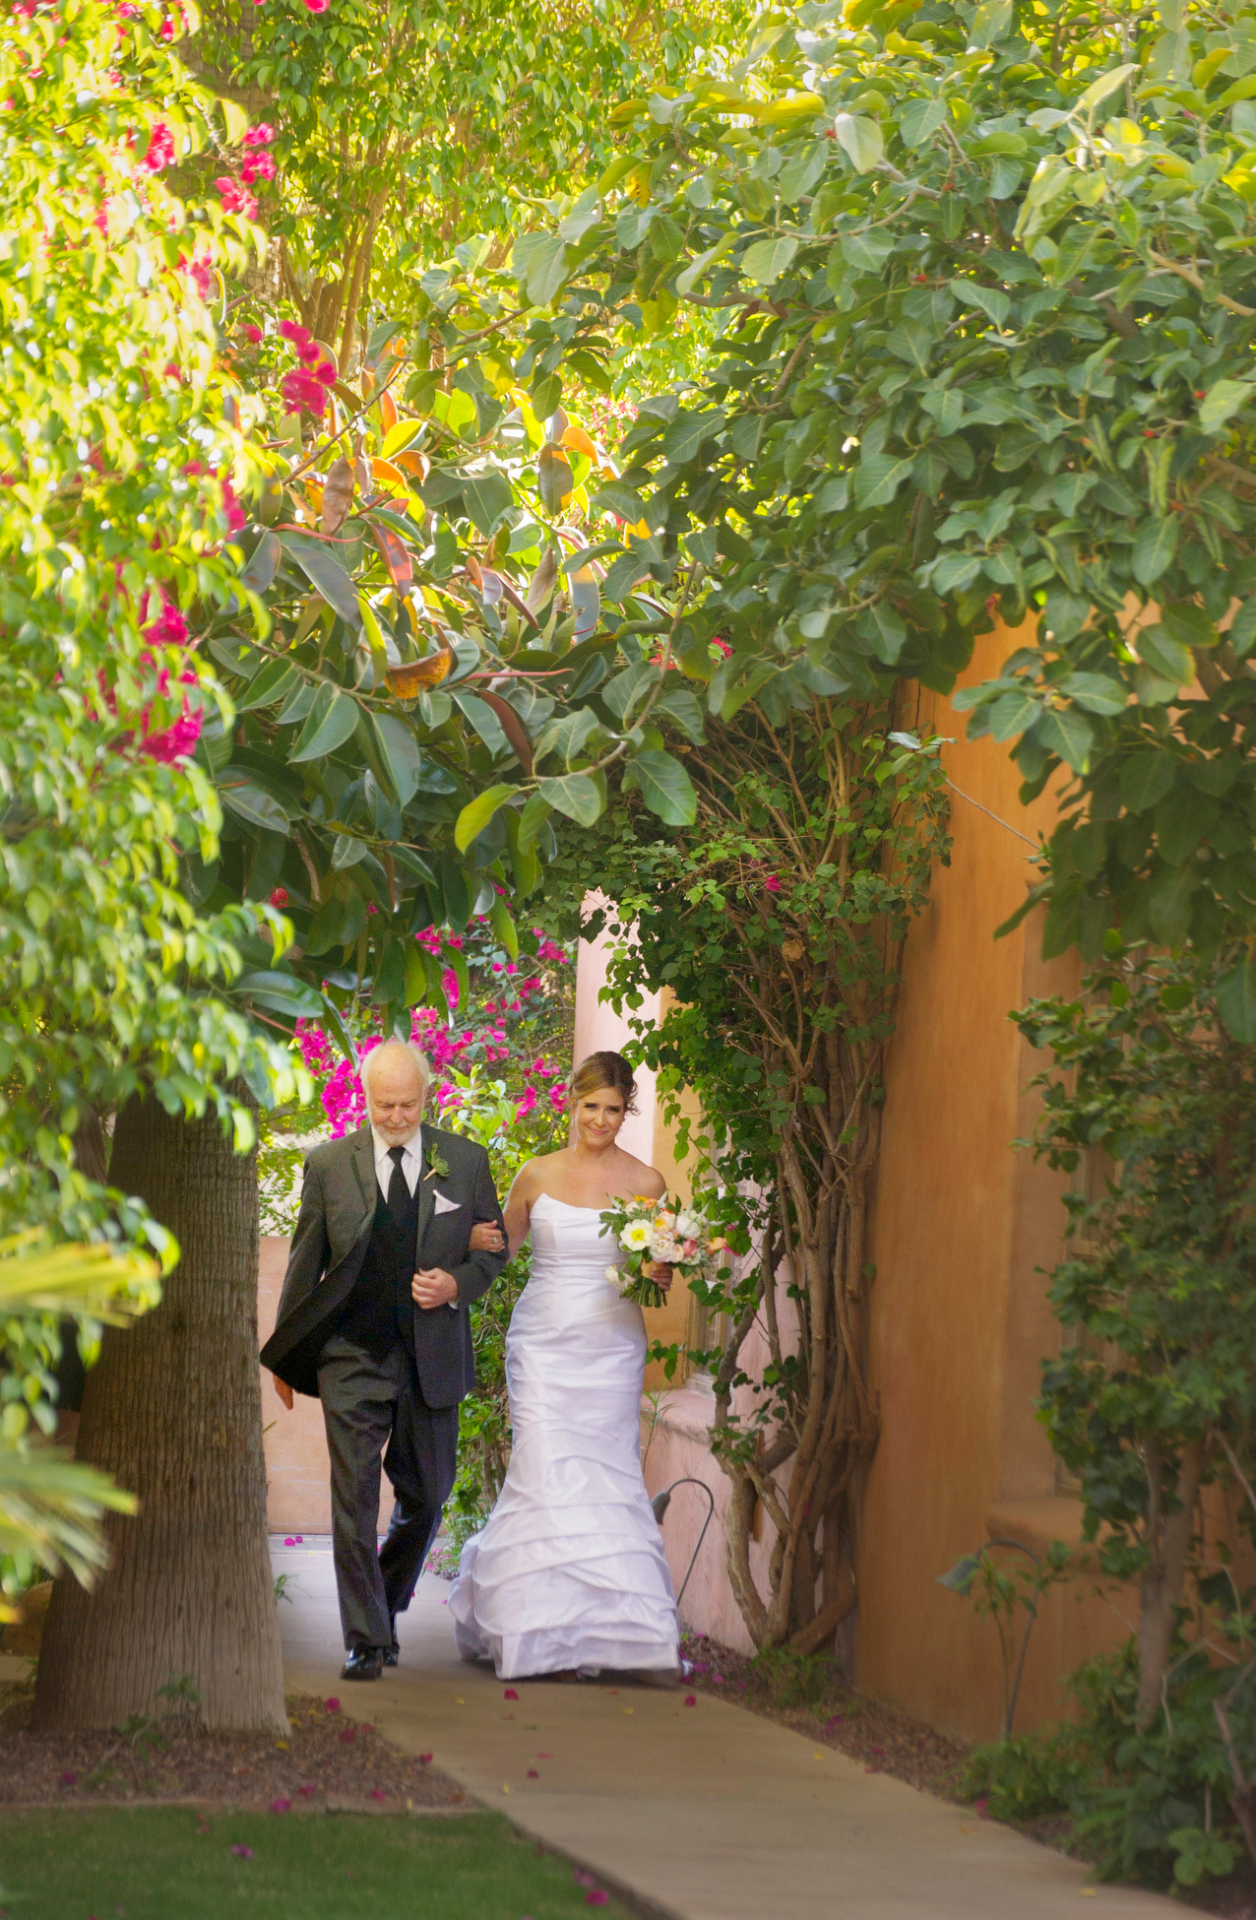 Royal Palms, Phoenix Elopement Image | The bride and her father walk together to the outdoor wedding ceremony